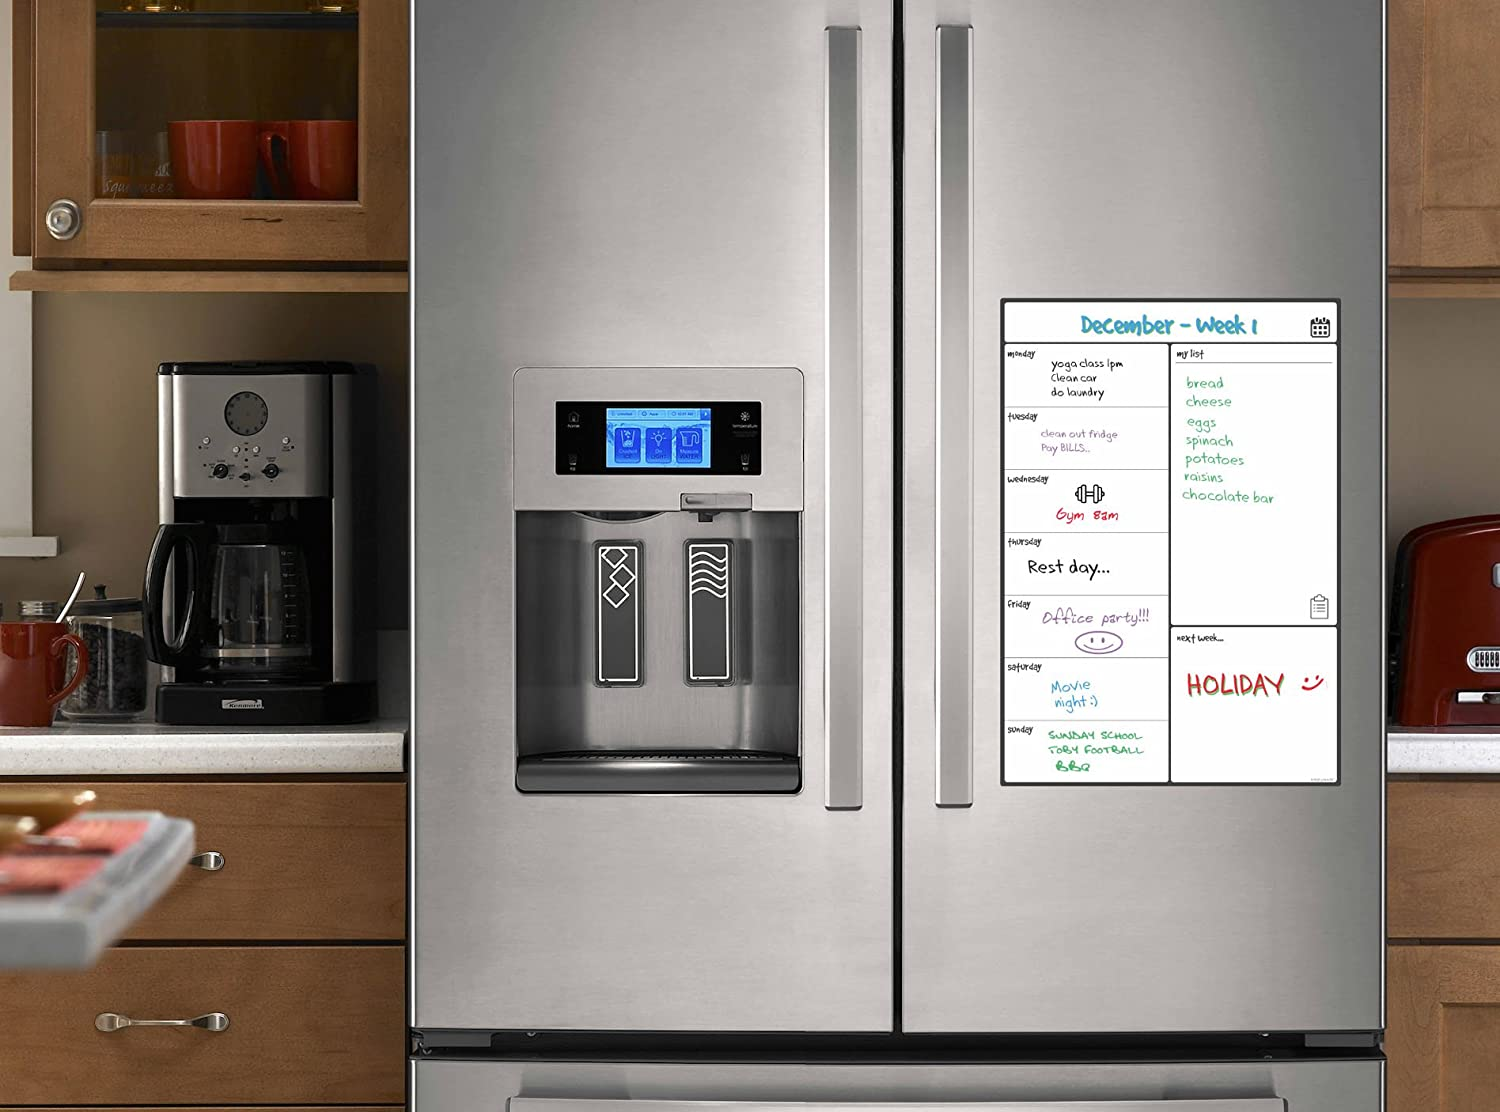 Uncategorized Pay Weekly Kitchen Appliances 34 best images about home and personal finance on pinterest magnetic white board fridge calendar by smart panda useful menu kitchen appliances pay